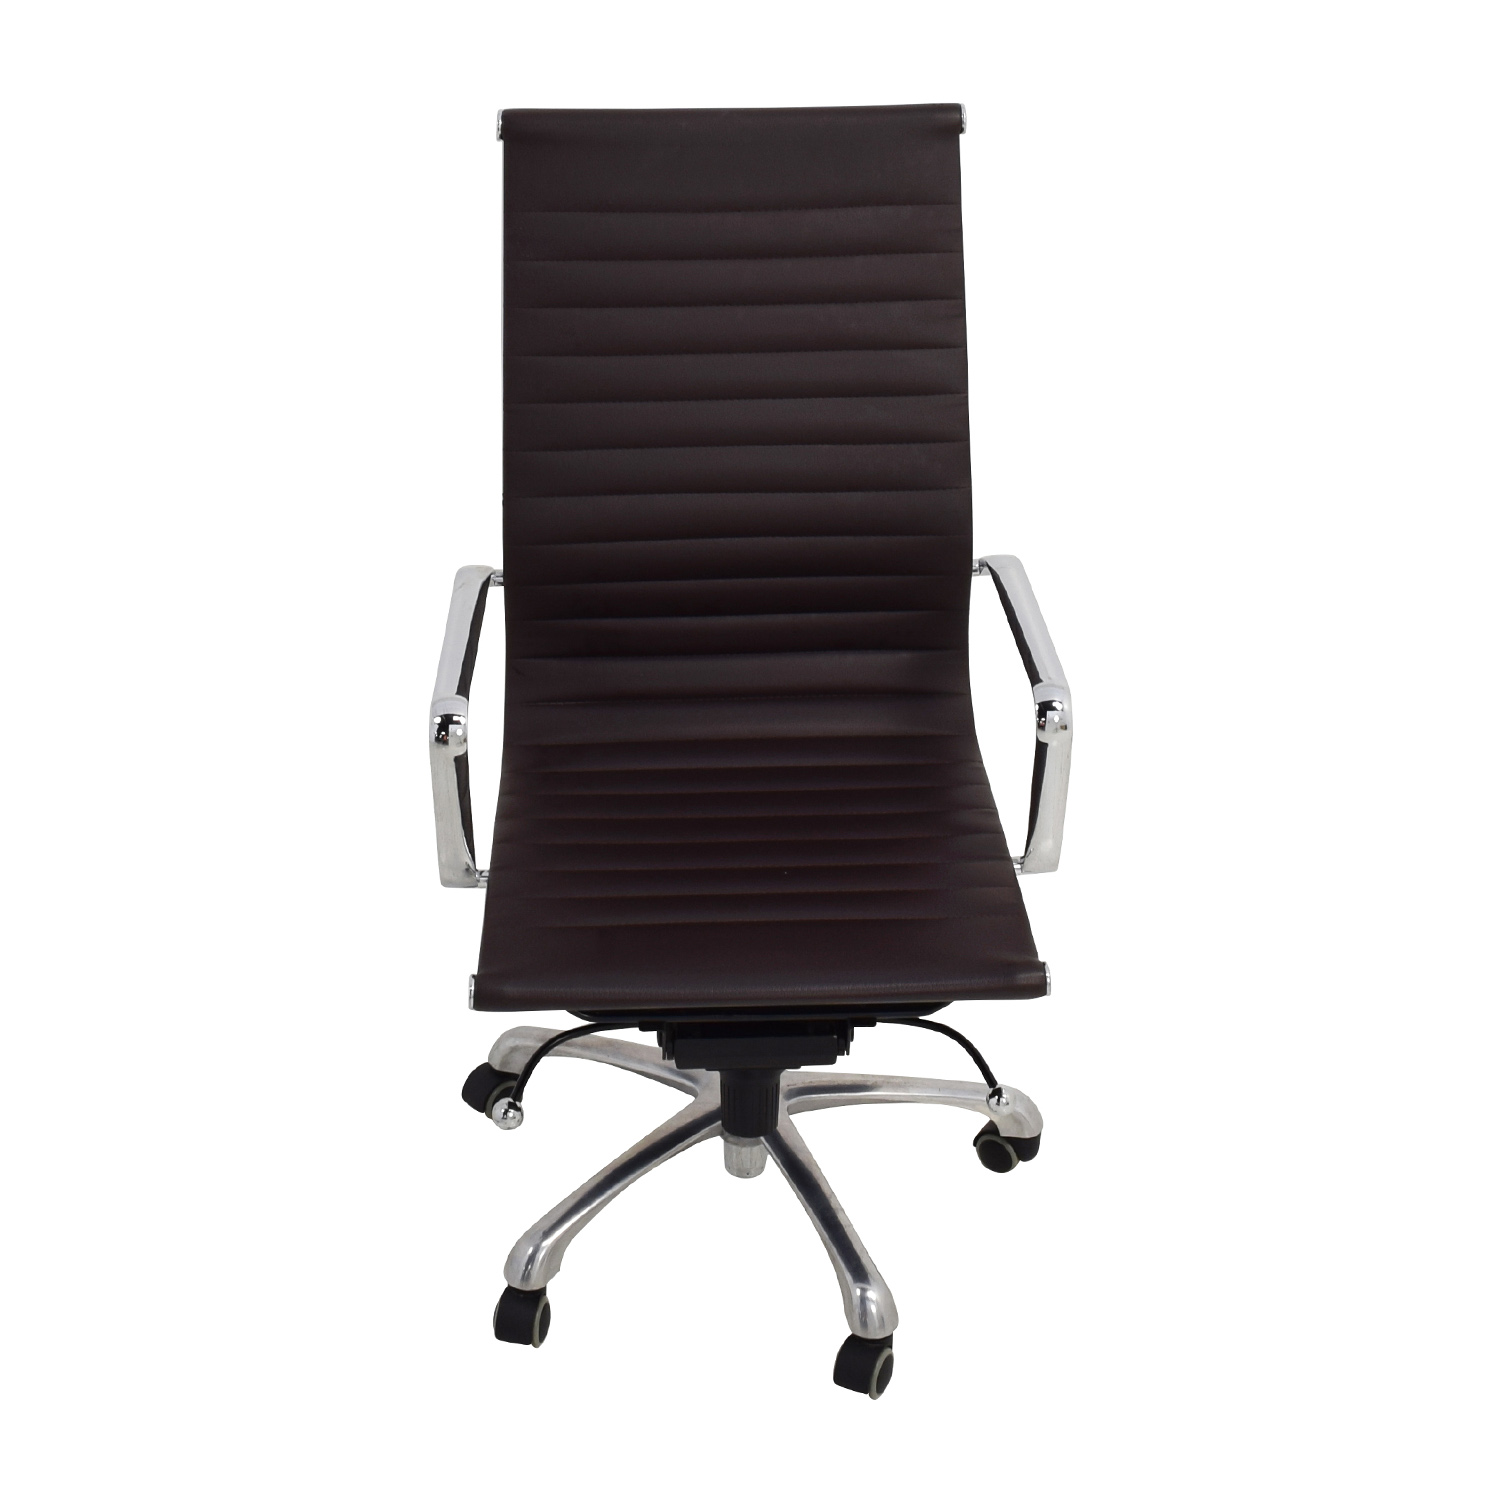 shop  Eames Style Black Adjustable Office Chair online